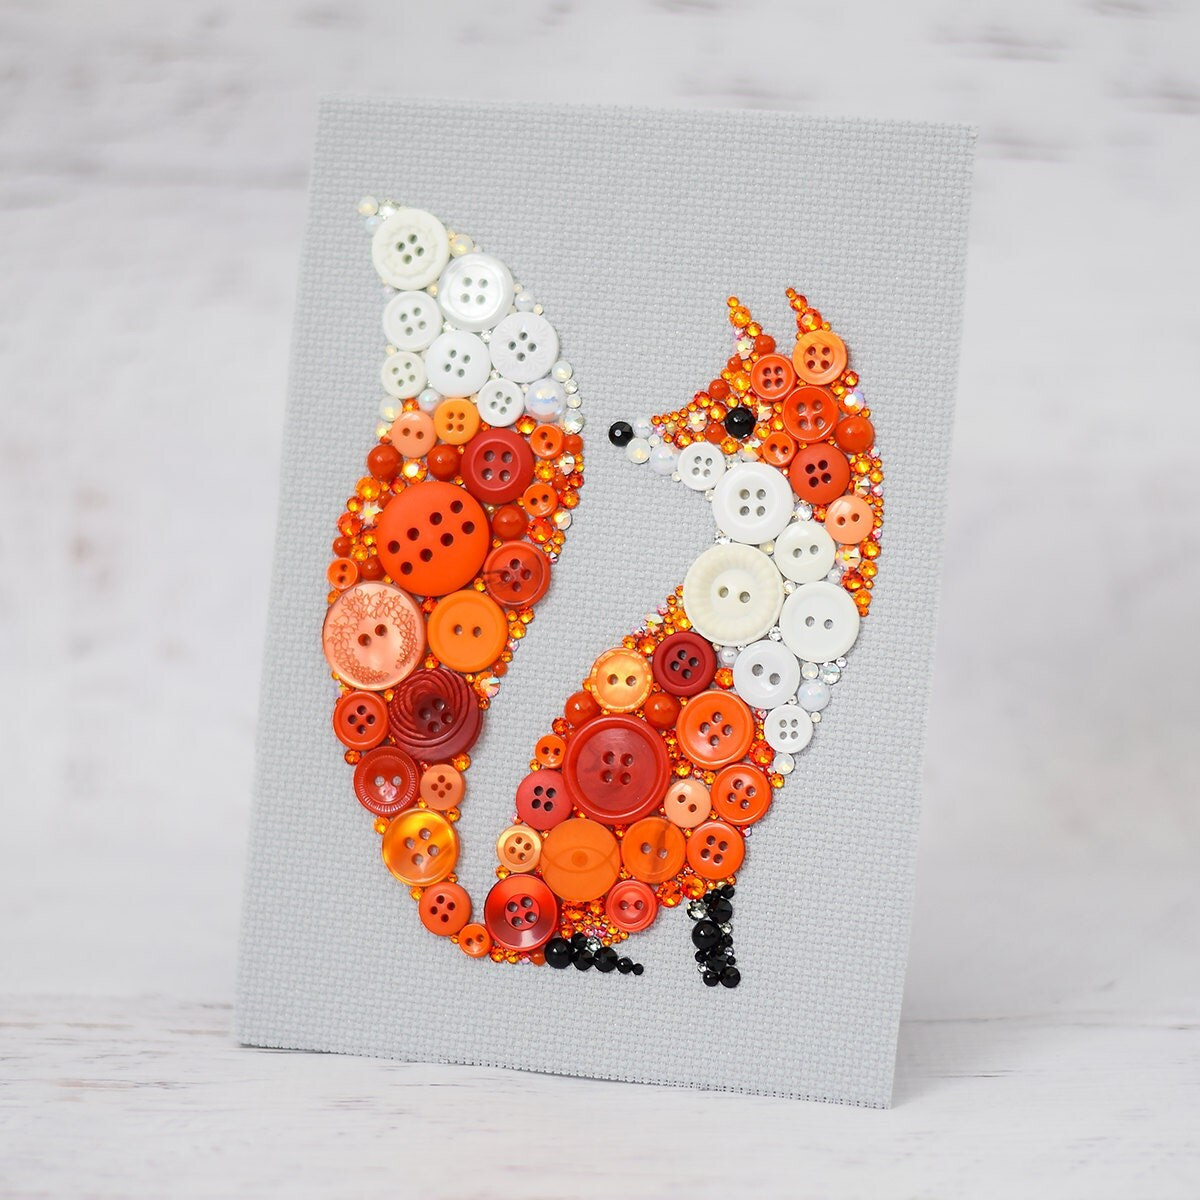 Custom Red Fox Button Art Fox Home Decor Bespoke Fox Art